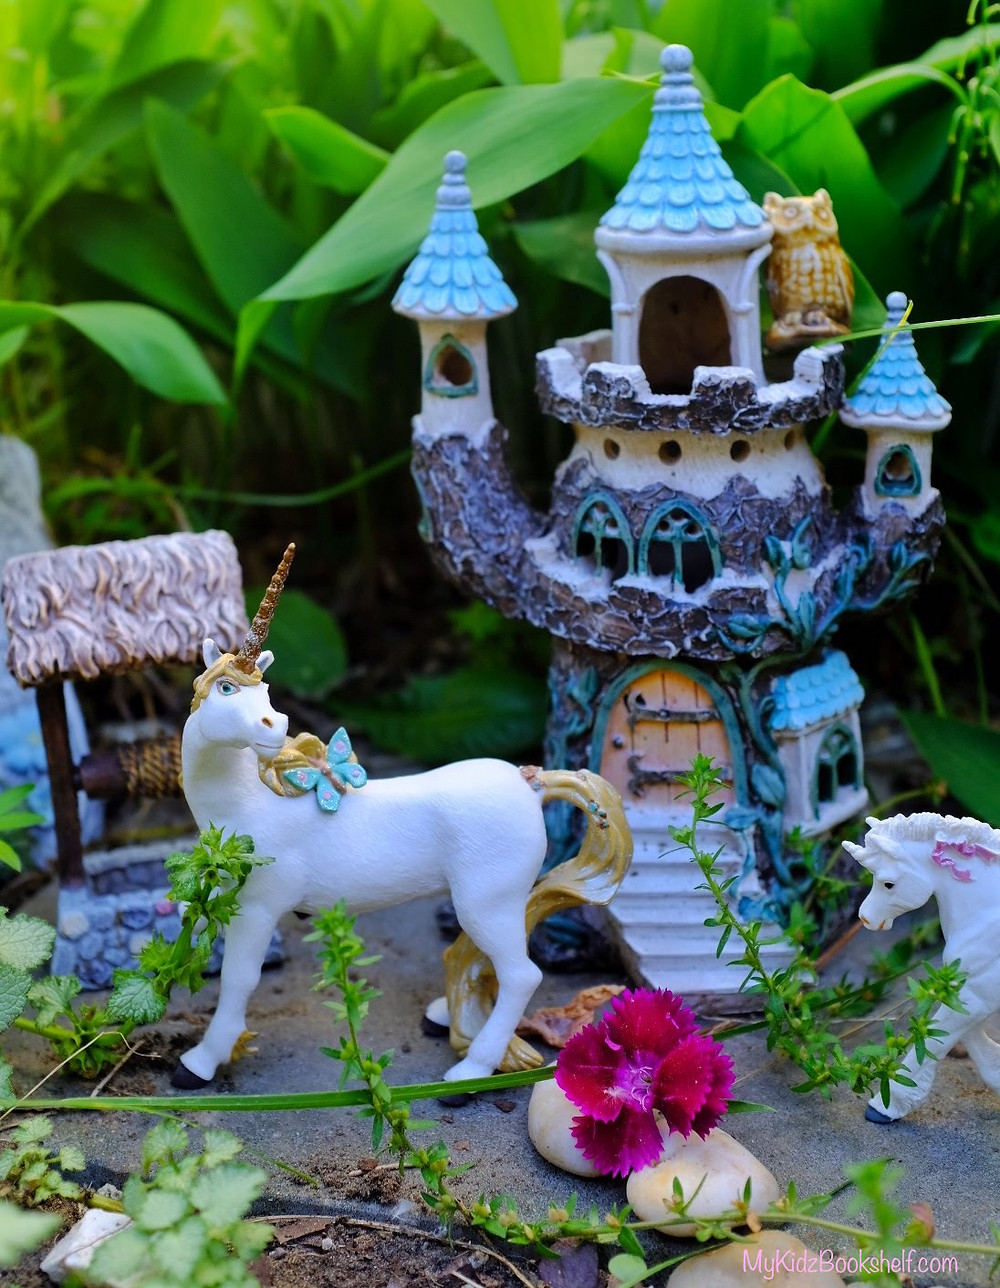 Fairy garden castle with unicorns, wishing well, flower surrounded by greenery